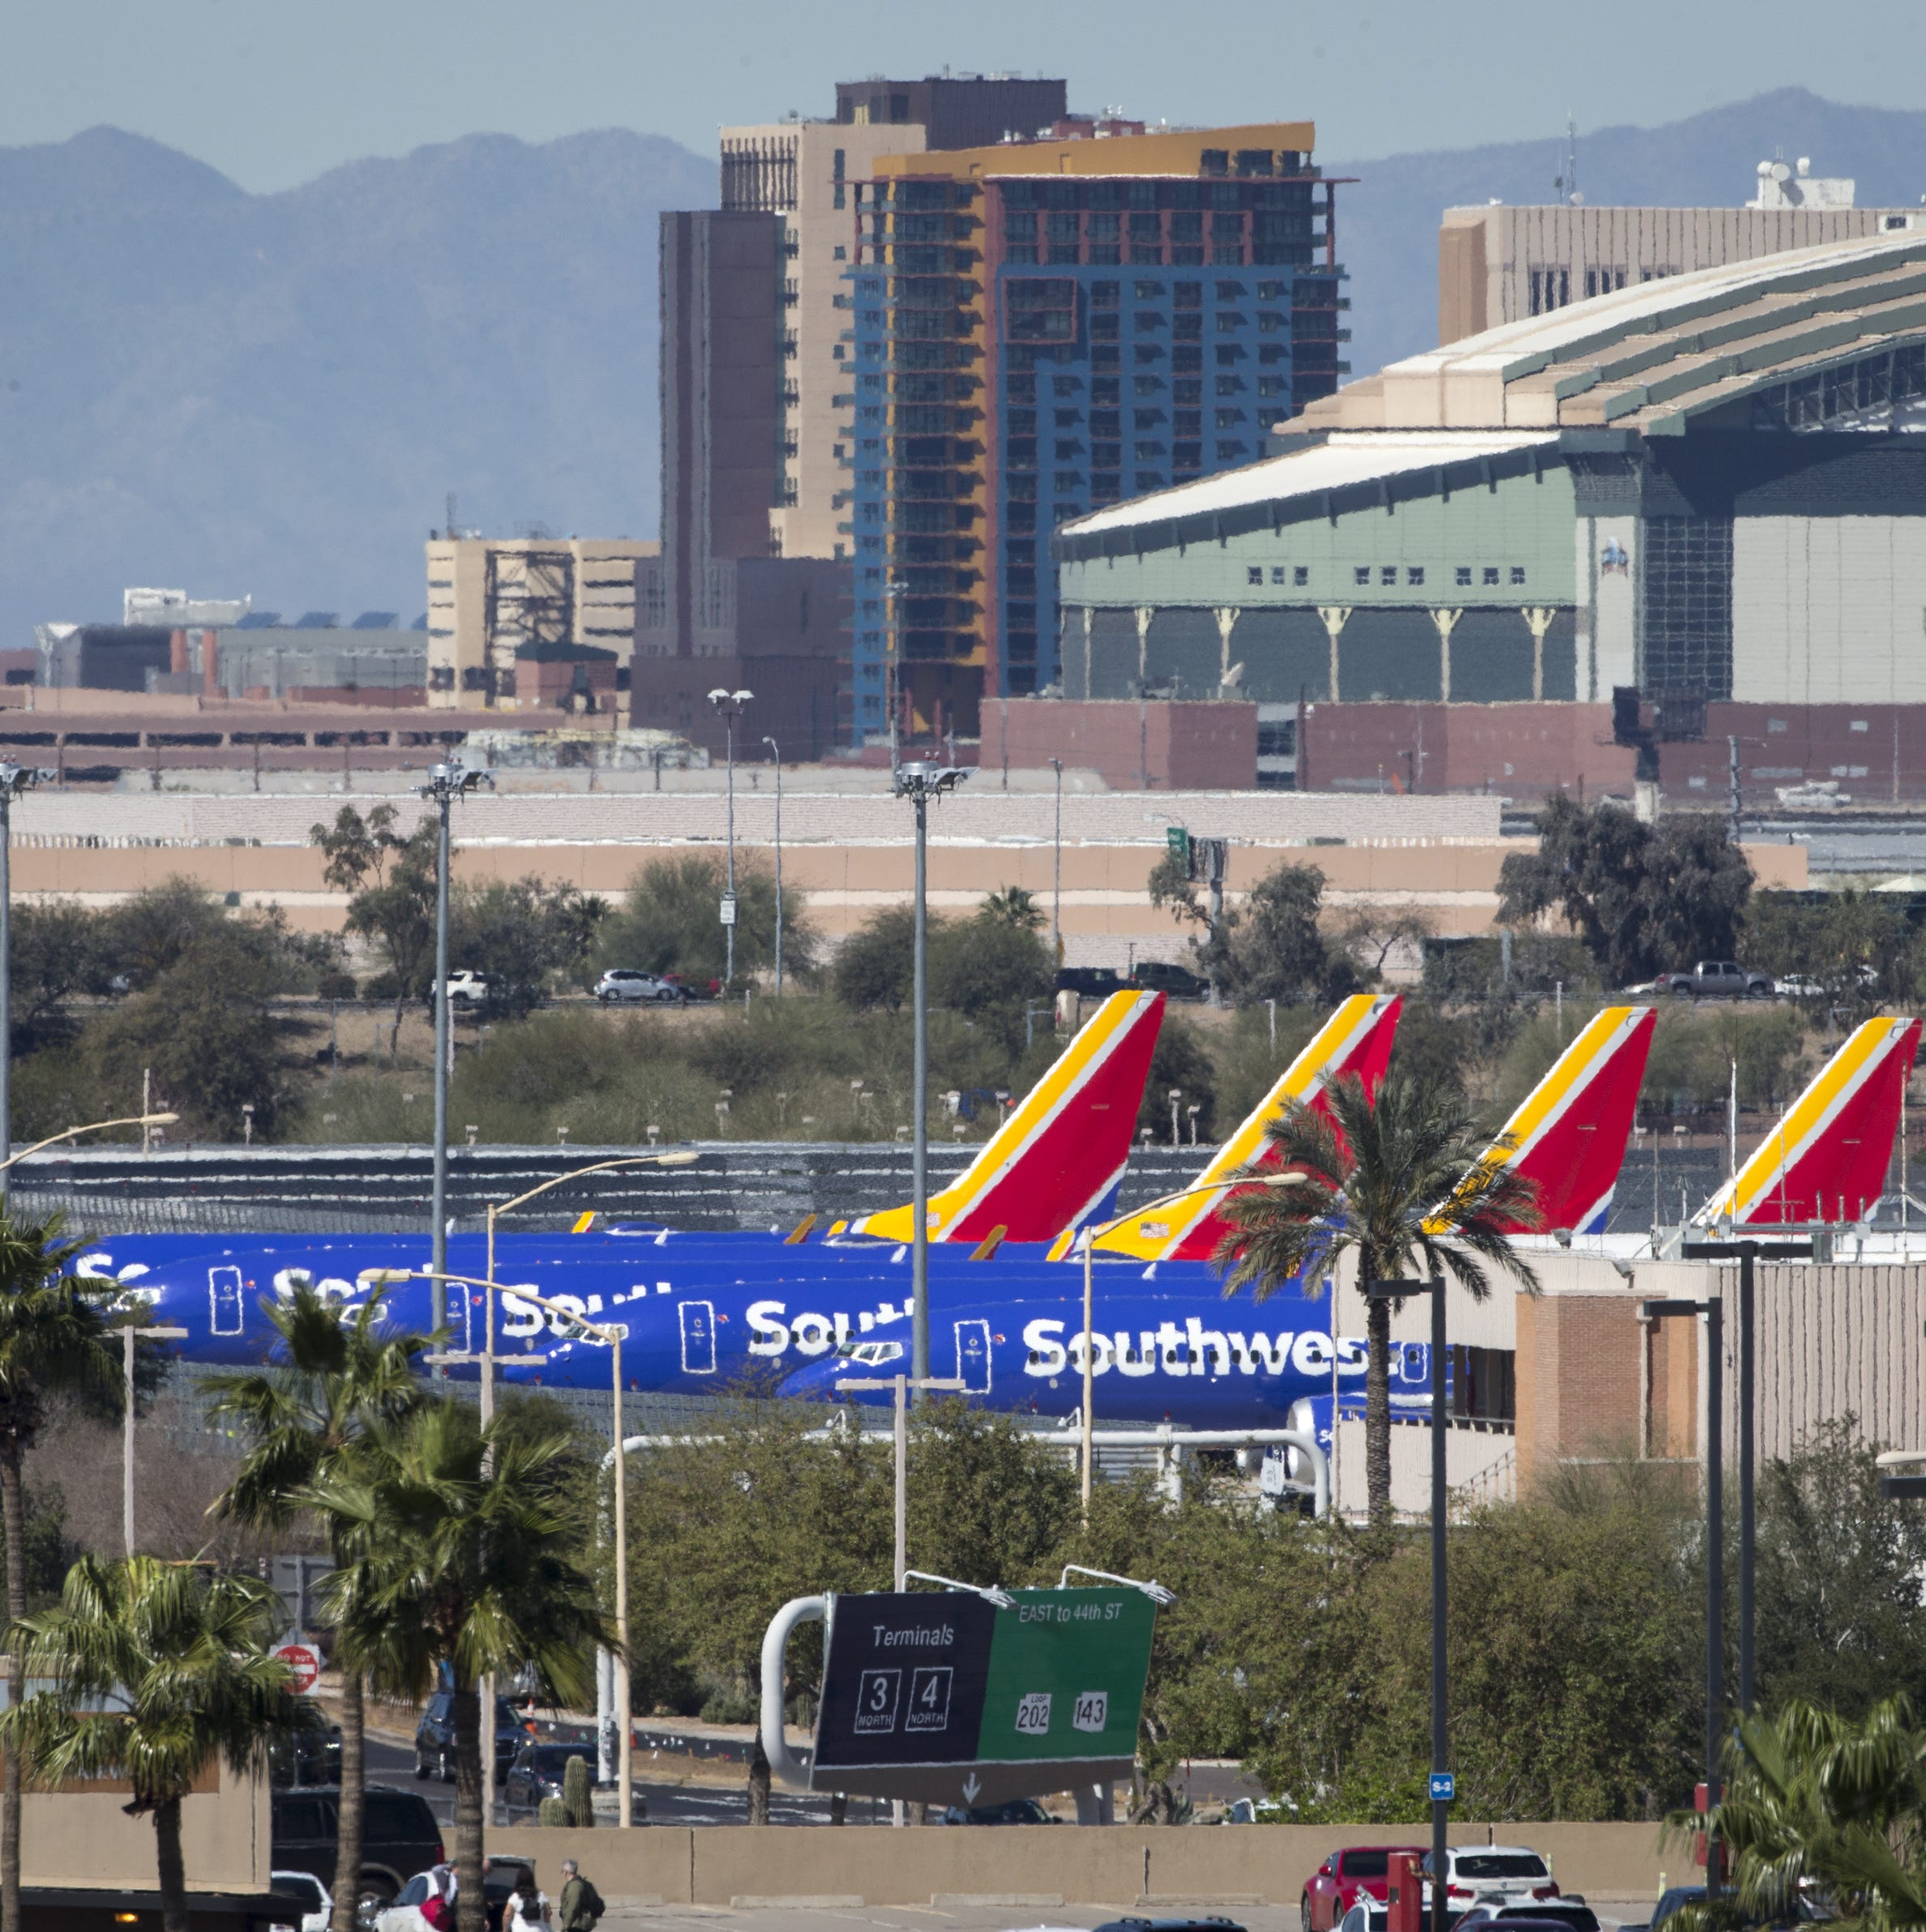 Check your reservation: Southwest Airlines removes 737 MAX 8 from schedule into August